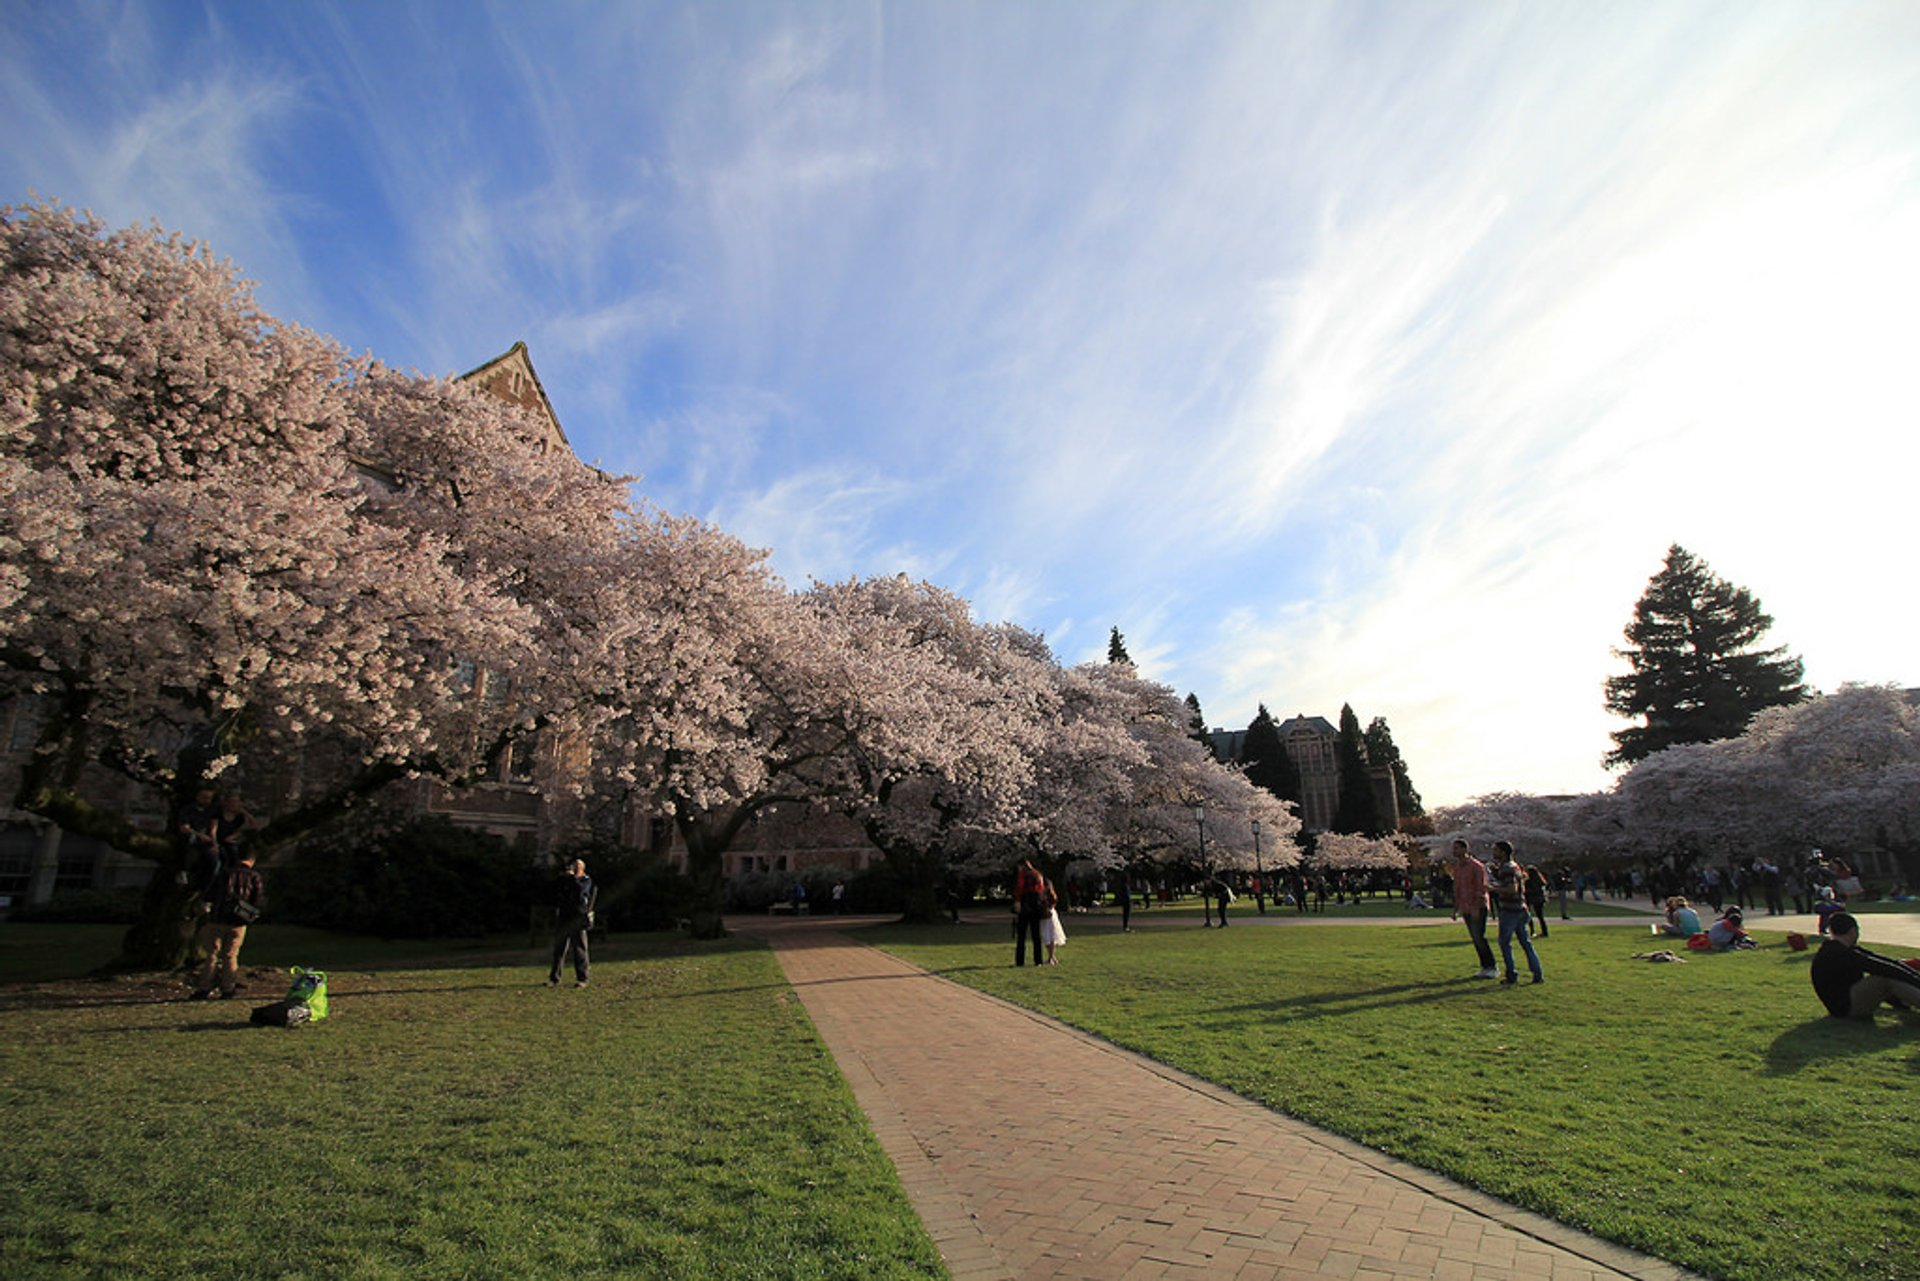 Cherry blossoms at the UW Quad 2020